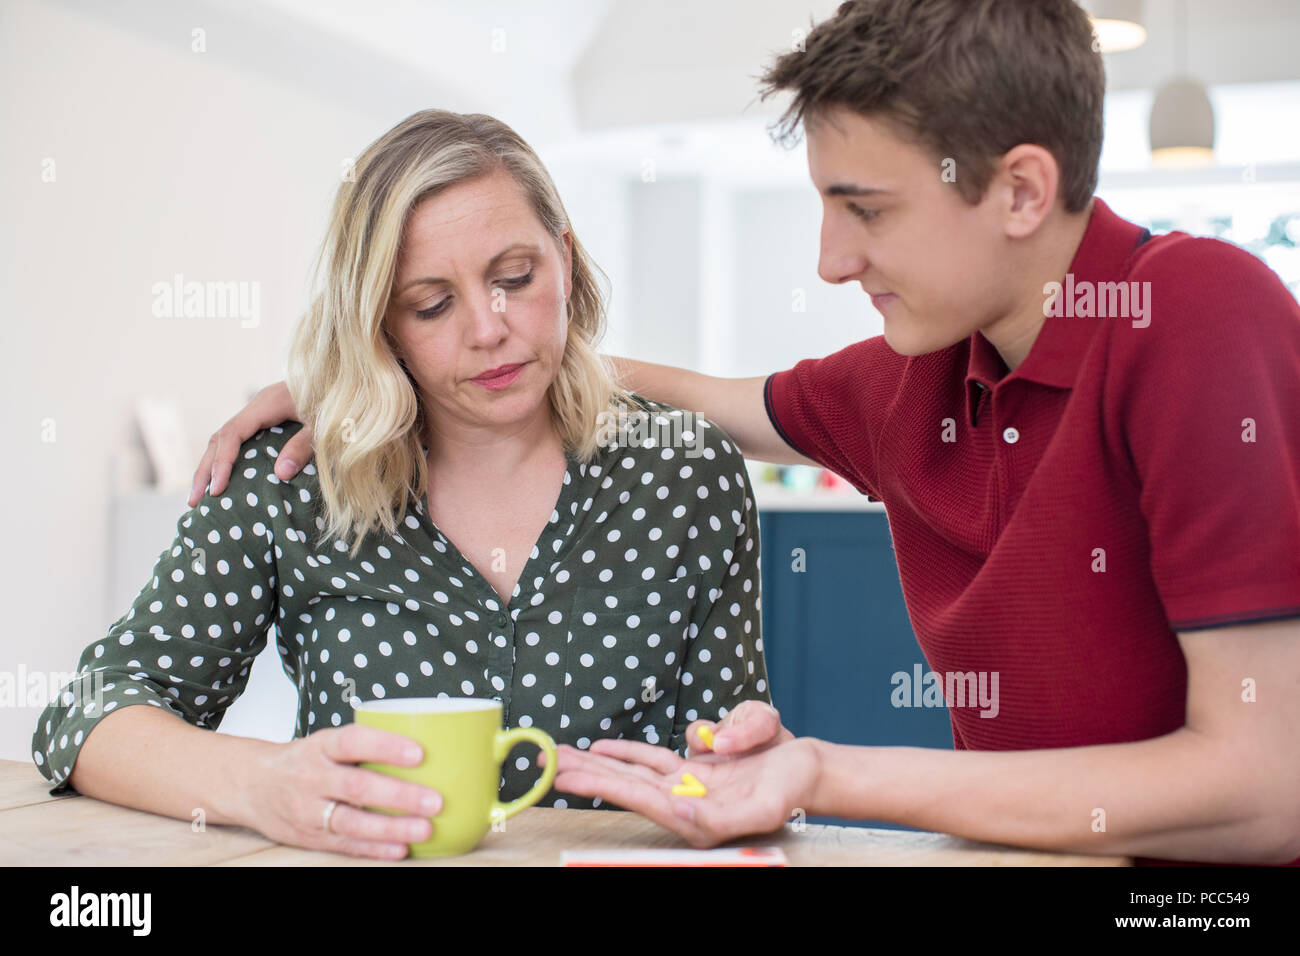 Teenage Son Helping Parent Suffering With Mental Health Problems With Medication - Stock Image